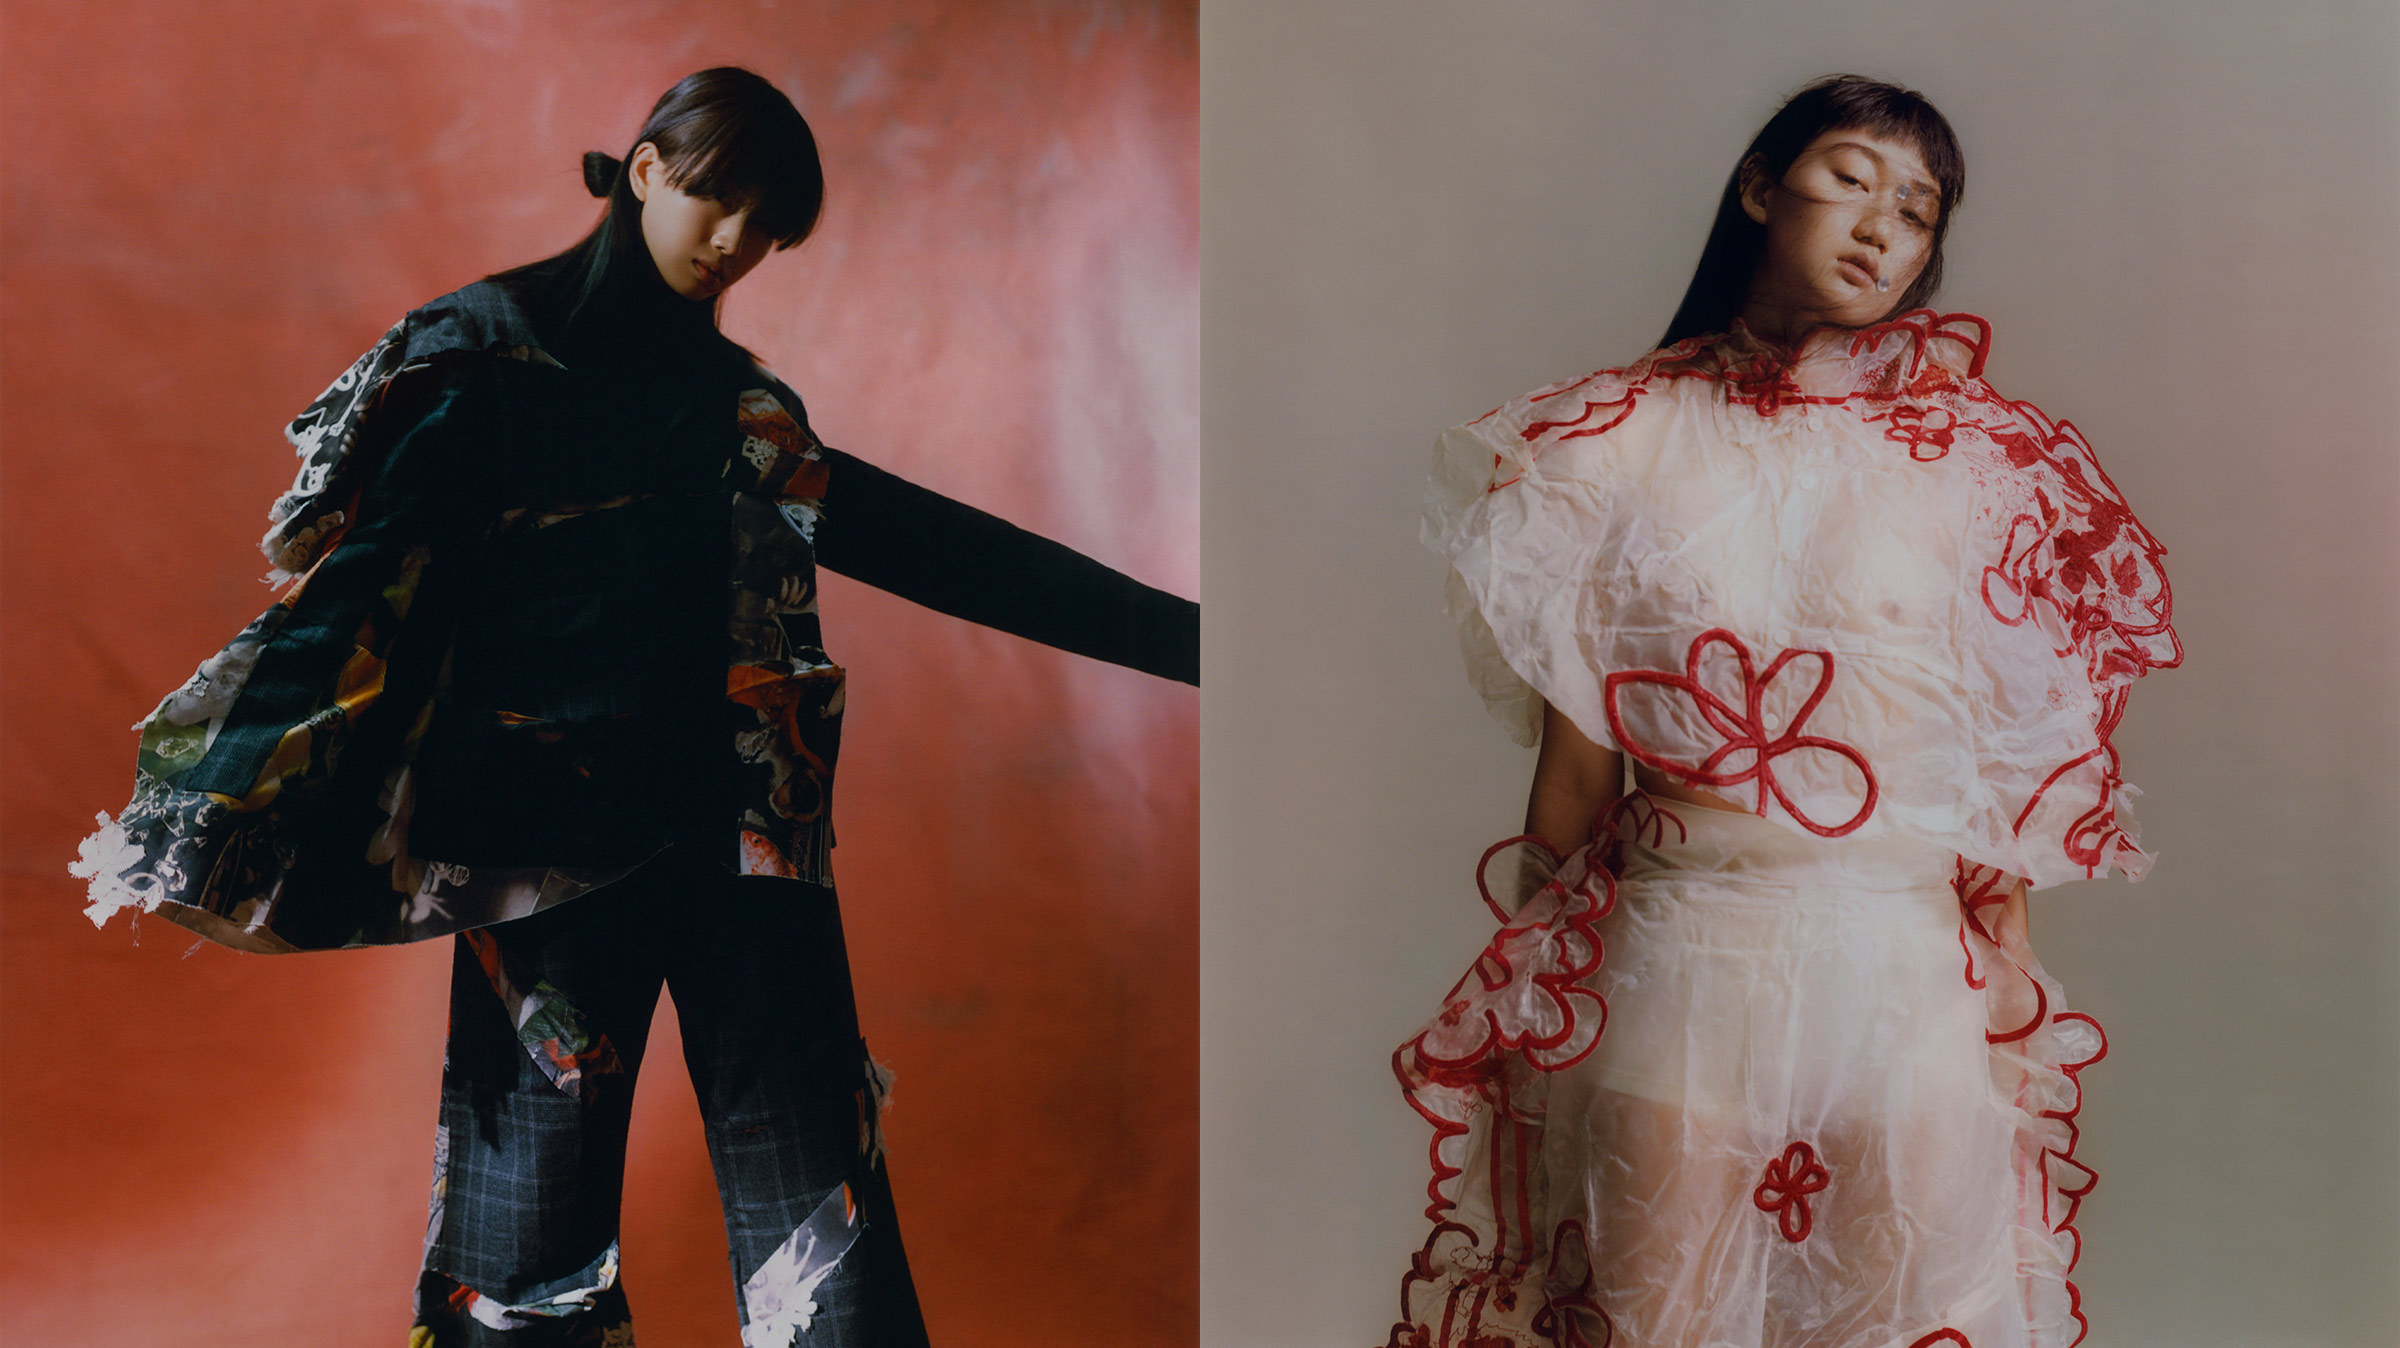 The Asian designers of London transforming the meaning of culture